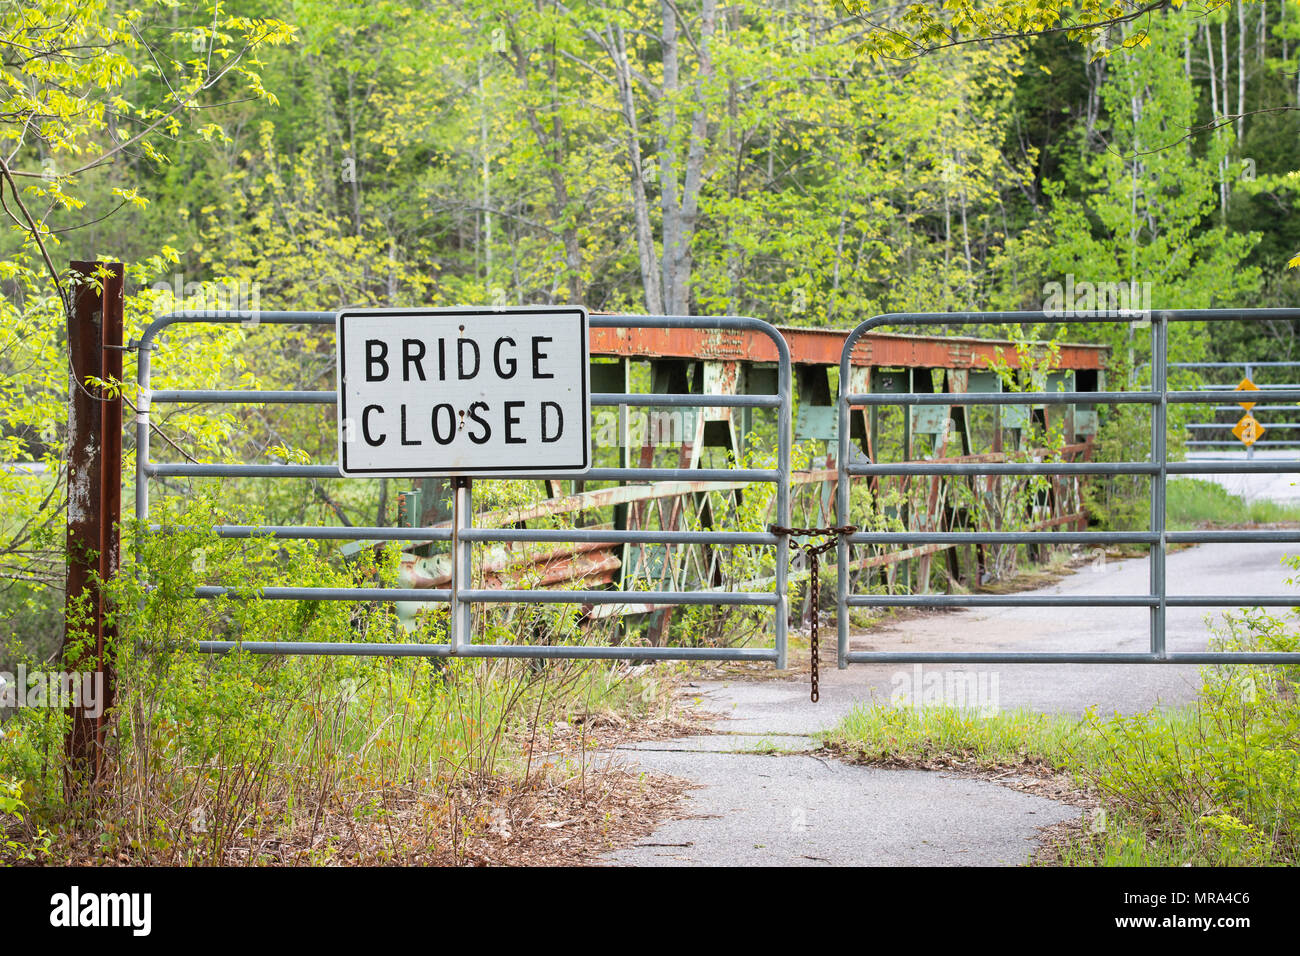 A gate with a bridge closed sign on an unused neglected bridge over the Sacandaga River in the Adirondack, NY wilderness - Stock Image